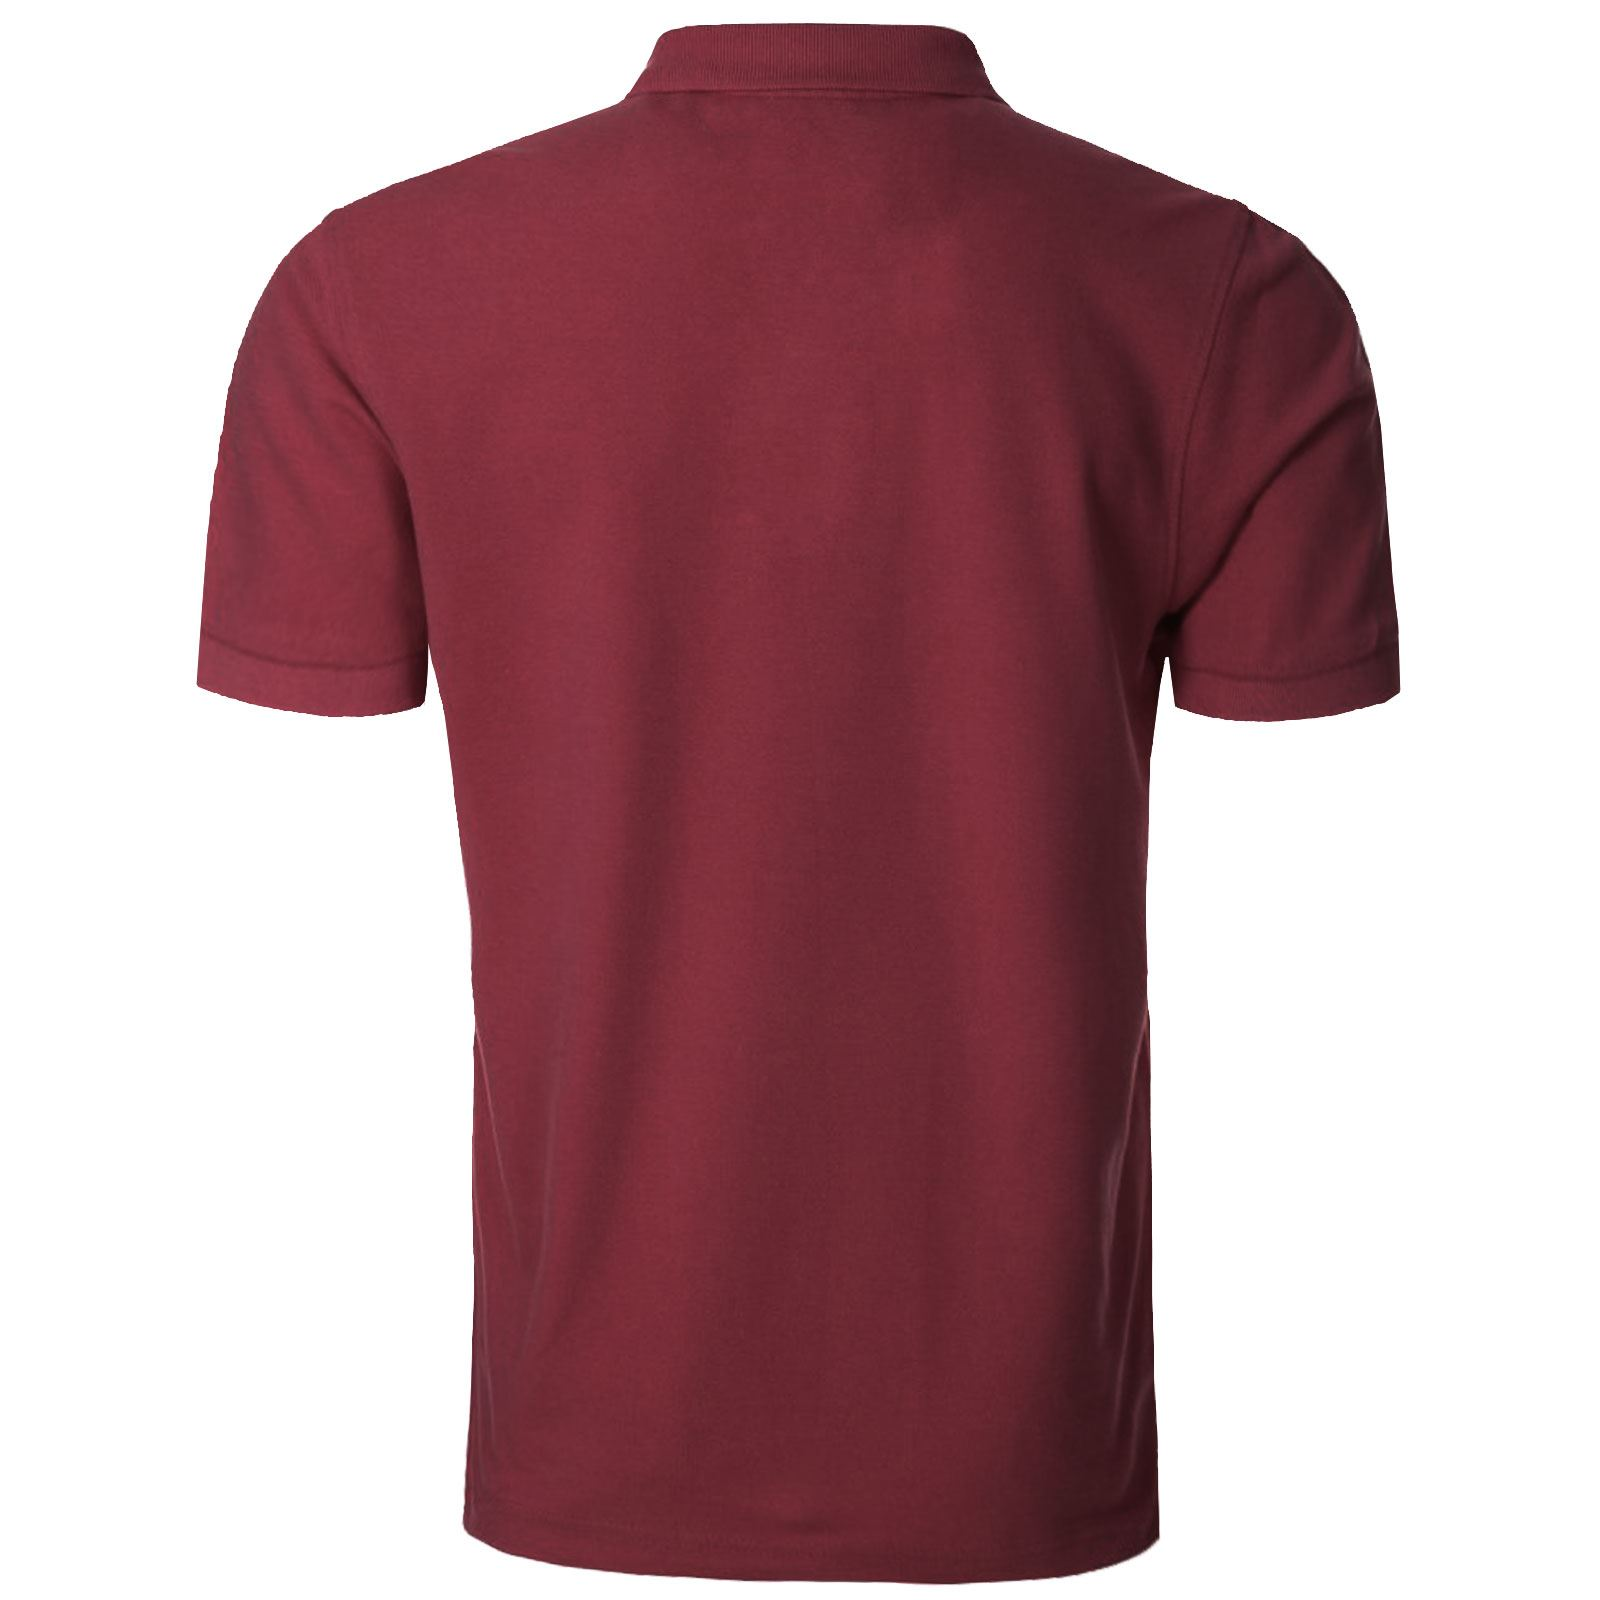 NEW-MENS-POLO-T-SHIRTS-SHORT-SLEEVES-TOP-GOLF-TENNIS-TEES-PIQUE-COLLAR-SPORTS thumbnail 19